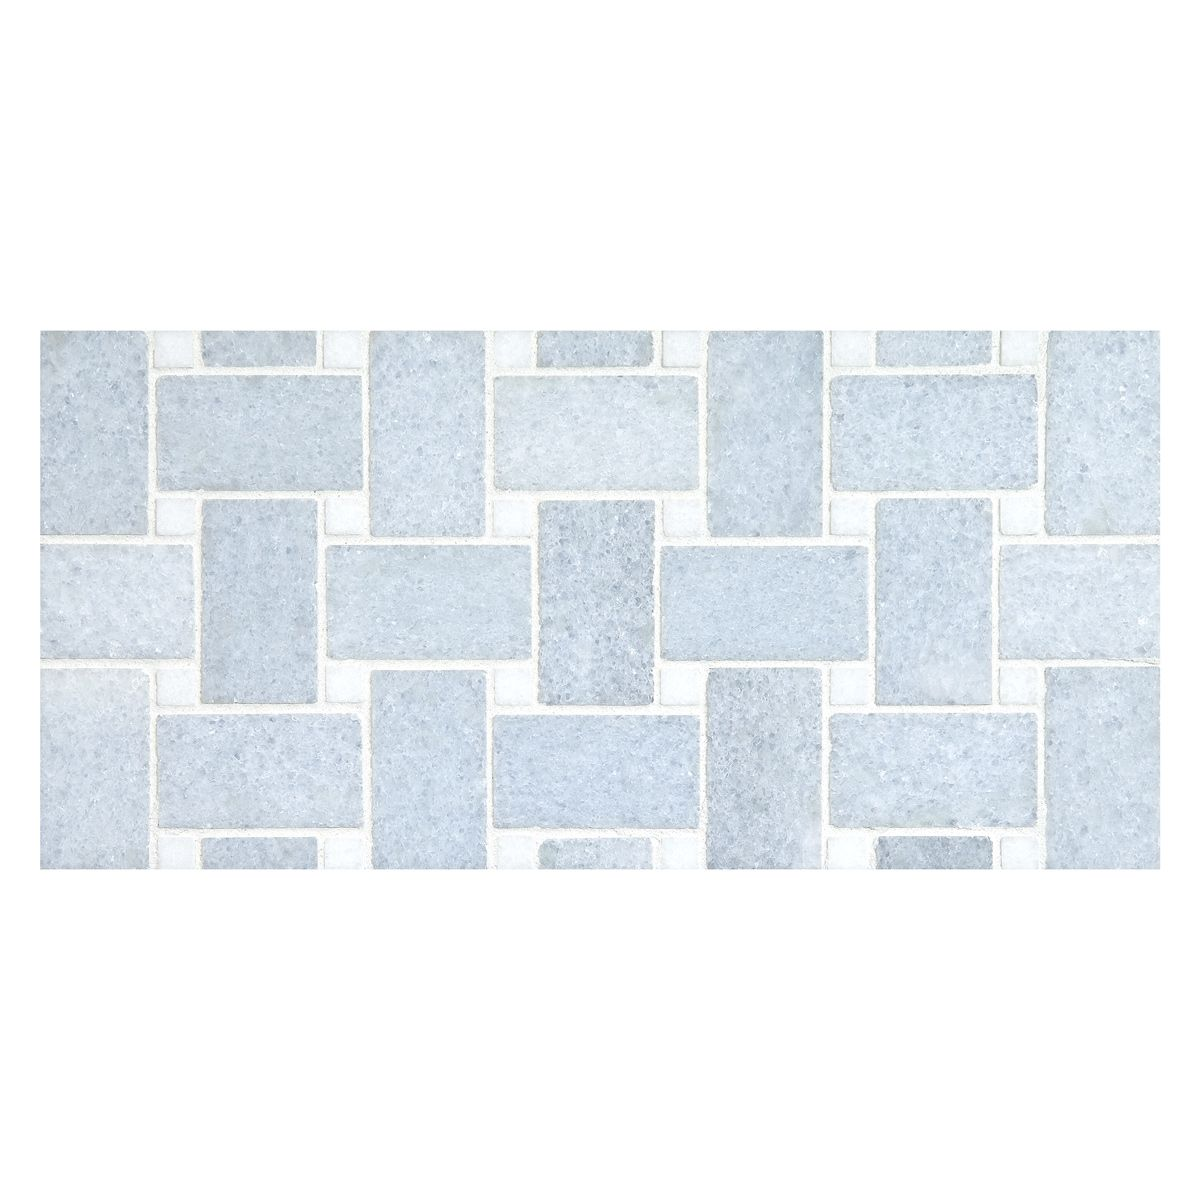 Complete Tile Collection Basketweave Mosaic In Blue Celeste Dark Marble With Thassos Dots Polished Mi Basket Weave Tile Blue Mosaic Basketweave Tile Floor